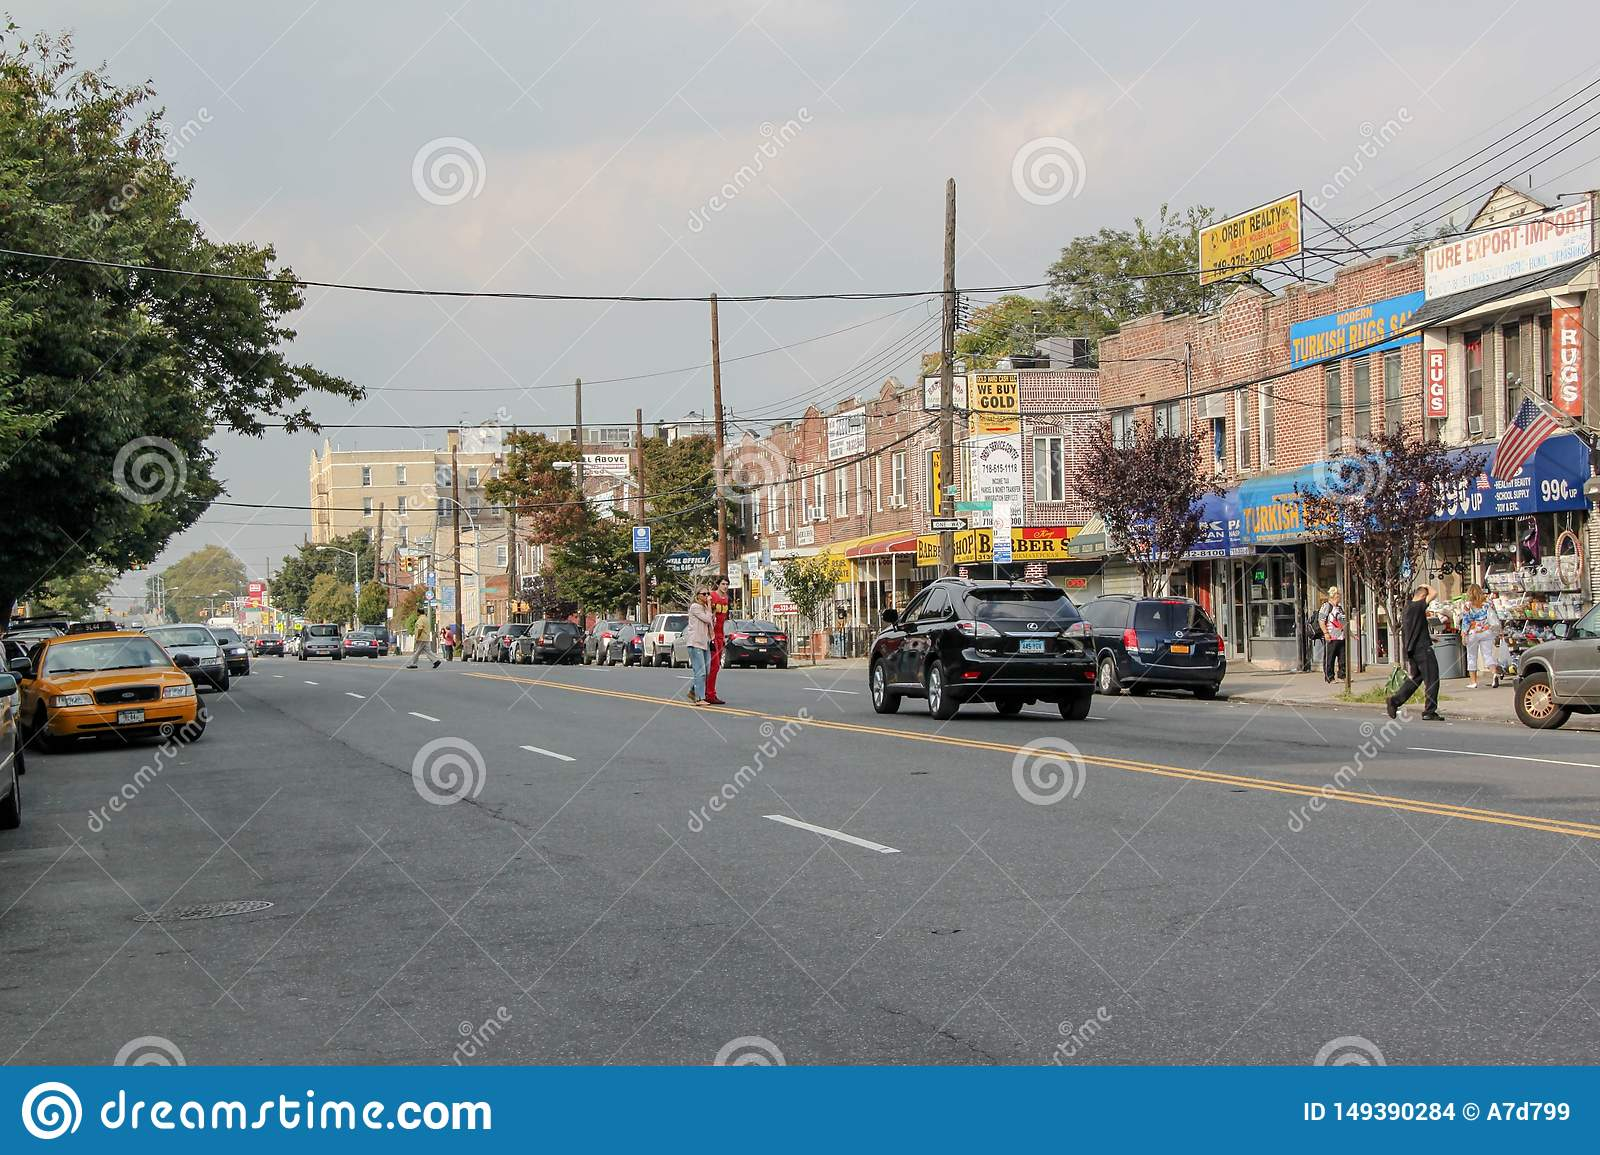 Beautiful view of street in Brighton Beach neighborhood. Car traffic and people concept. New York. USA.